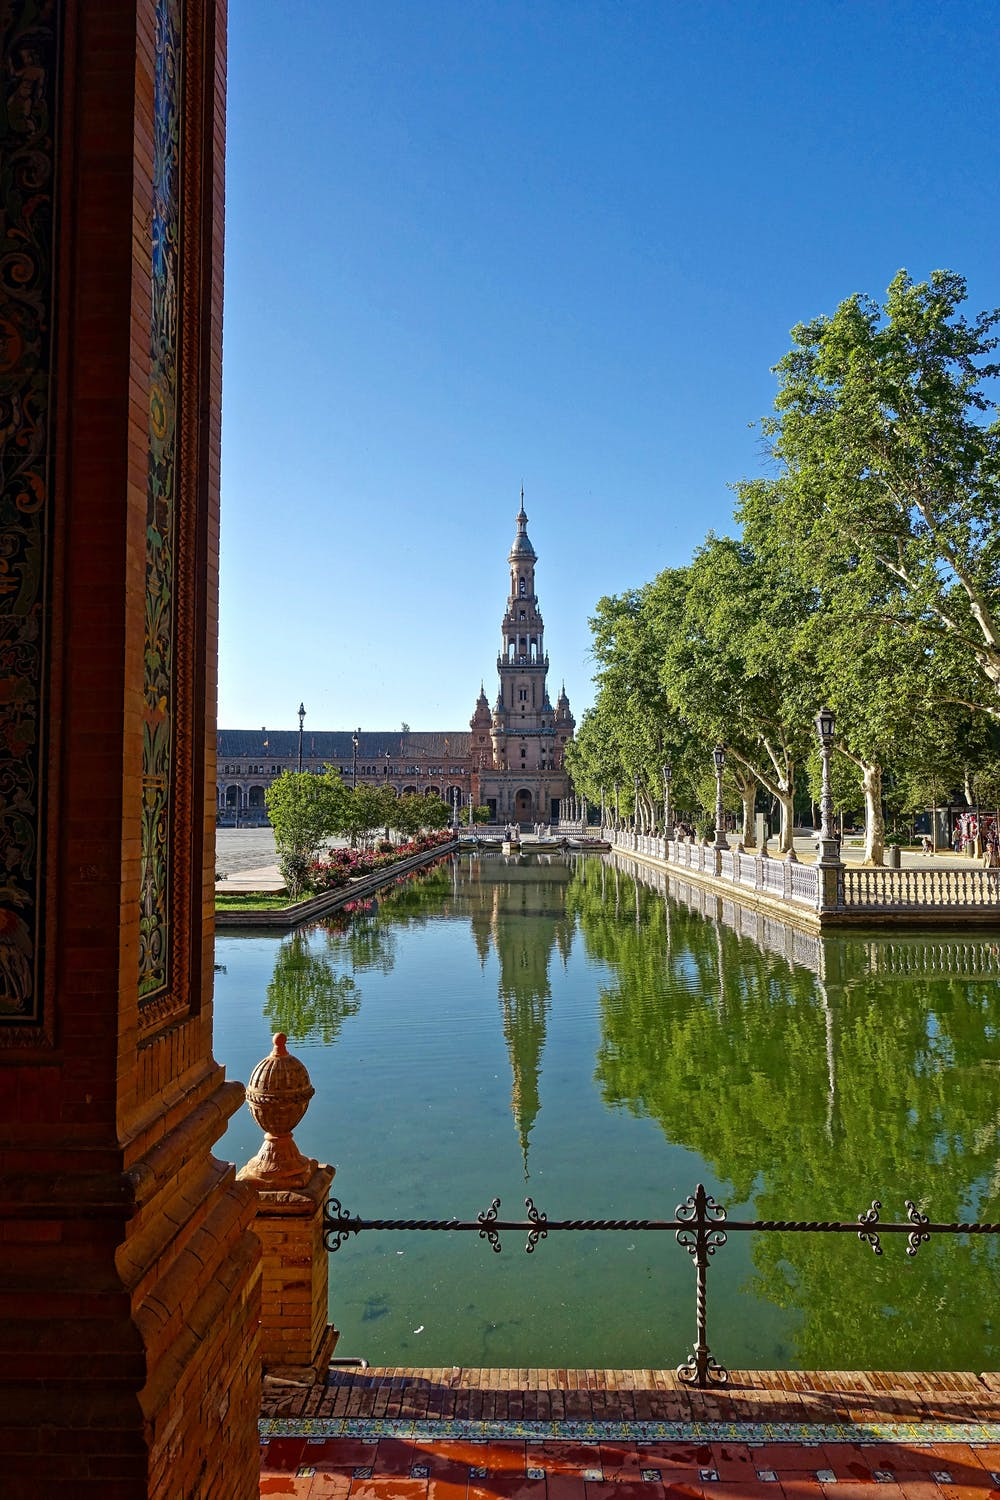 plaza-de-espania-channel-church-seville-161239.jpeg